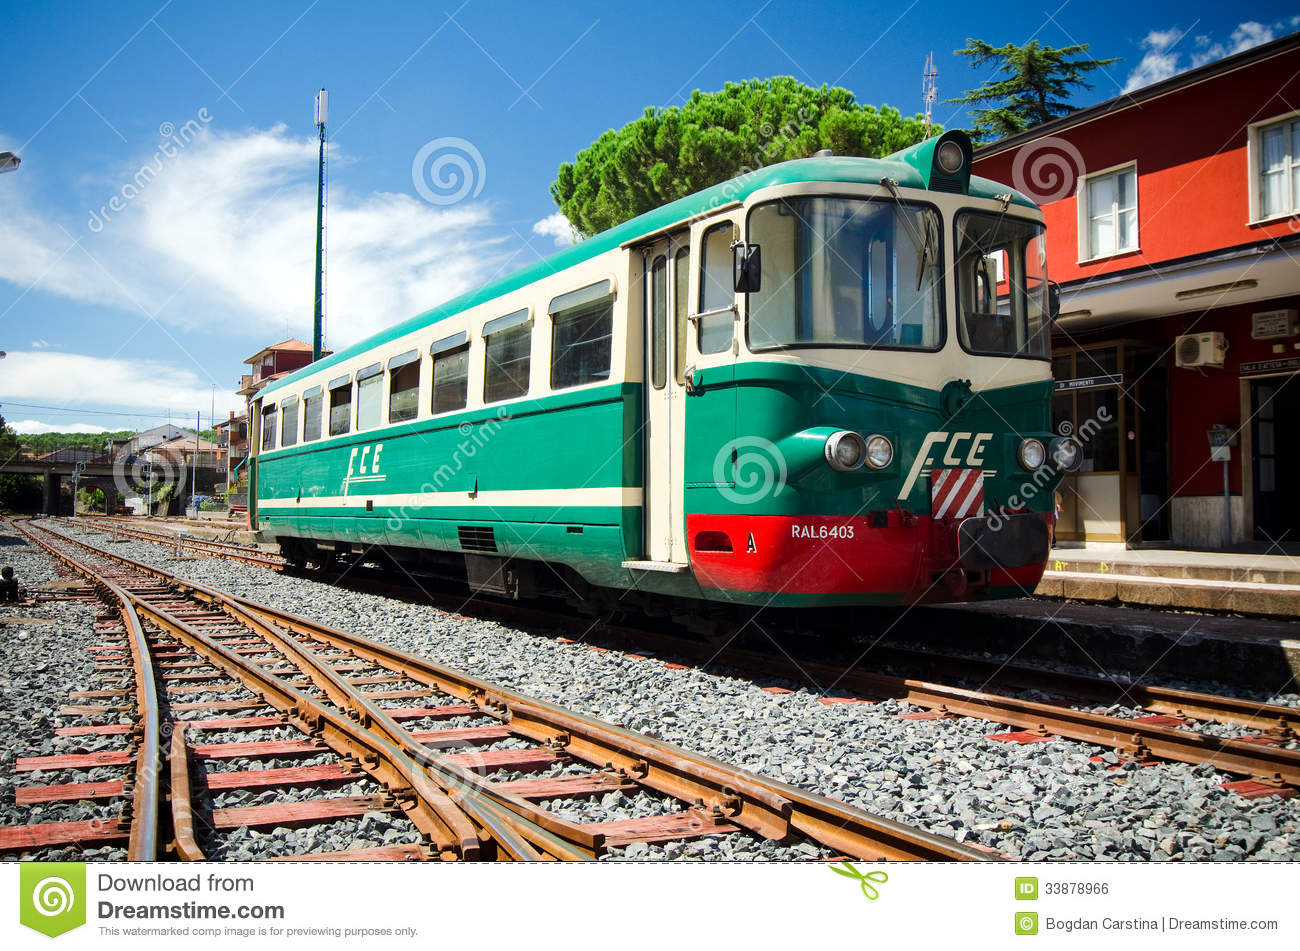 5f434f4b6c6e8 The Ferrovia Circumetnea is narrow-gauge regional railway line in Sicily  that follows a route which almost encircles the Etna volcano.